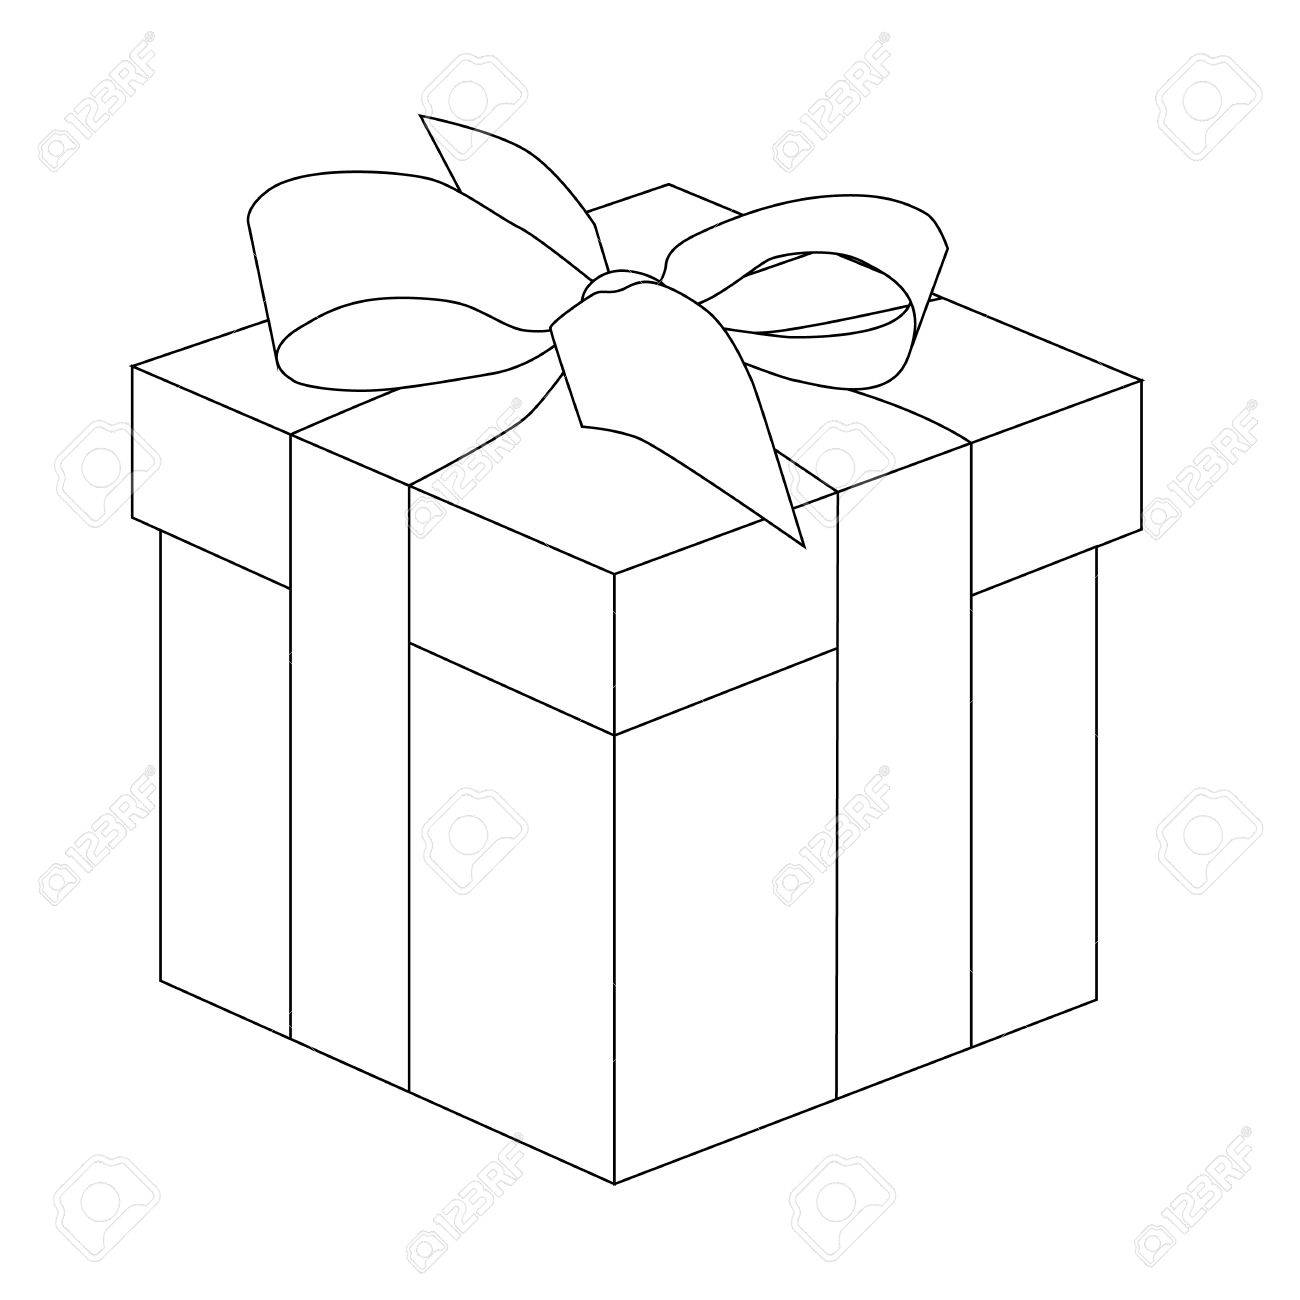 Gift Box Outline Present For Christmas Or Birthday Vector Illustration Stock